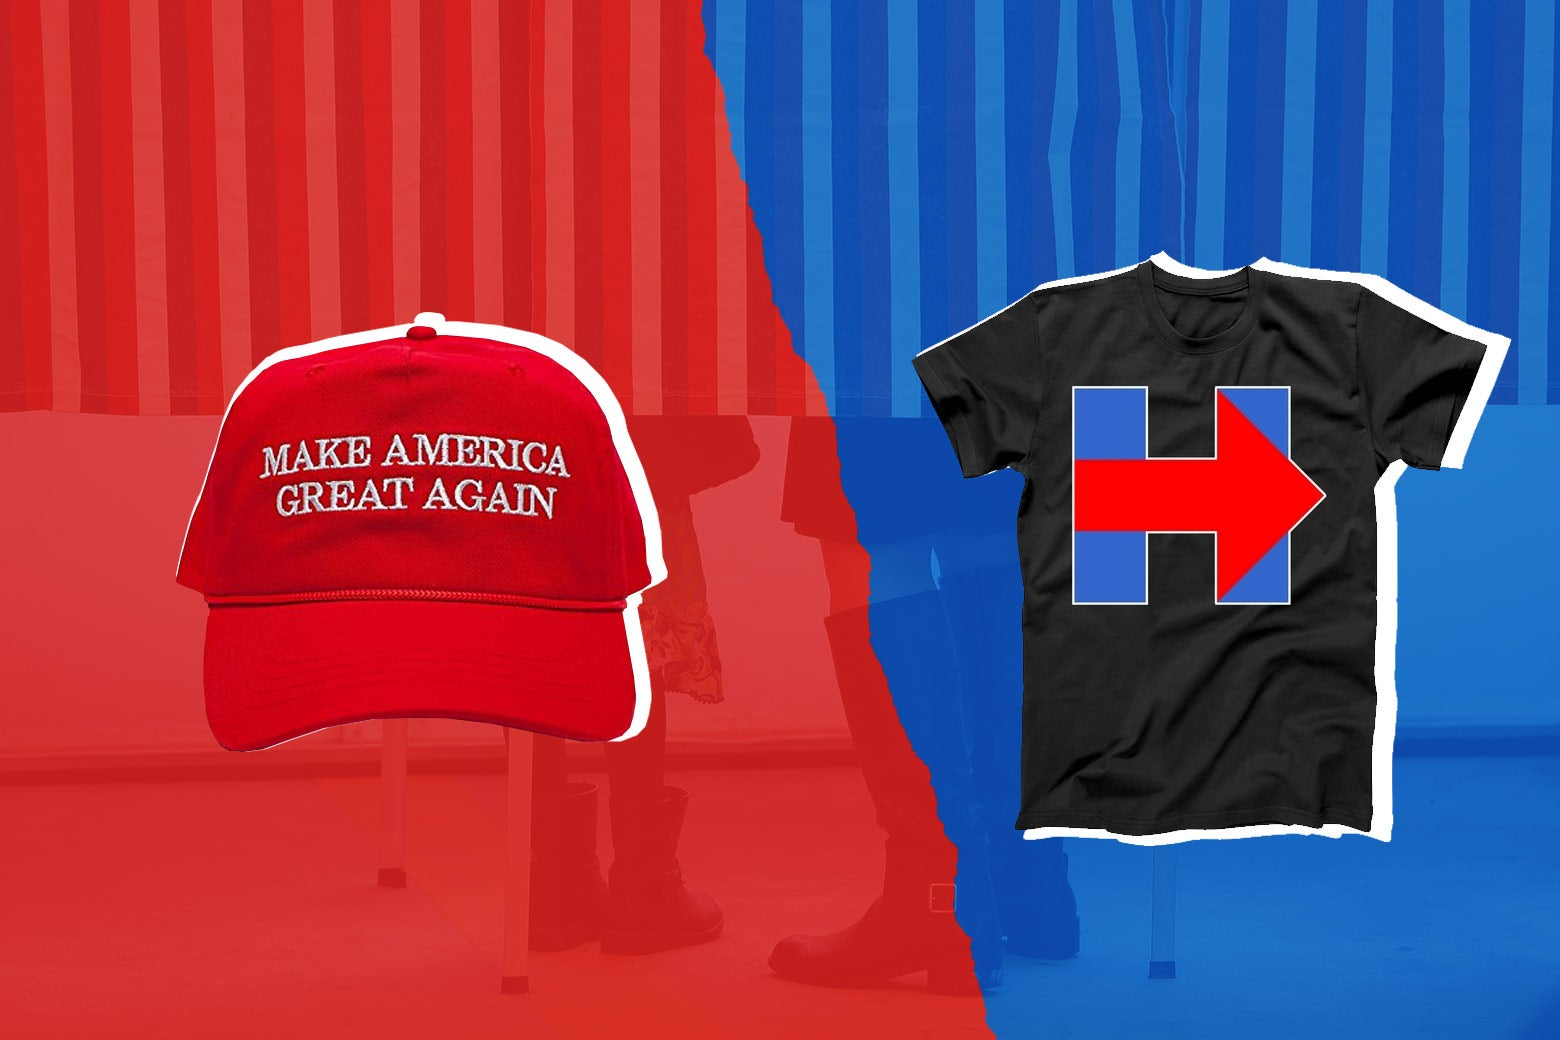 Make America Great Again hat in red and a Hillary Clinton shirt.